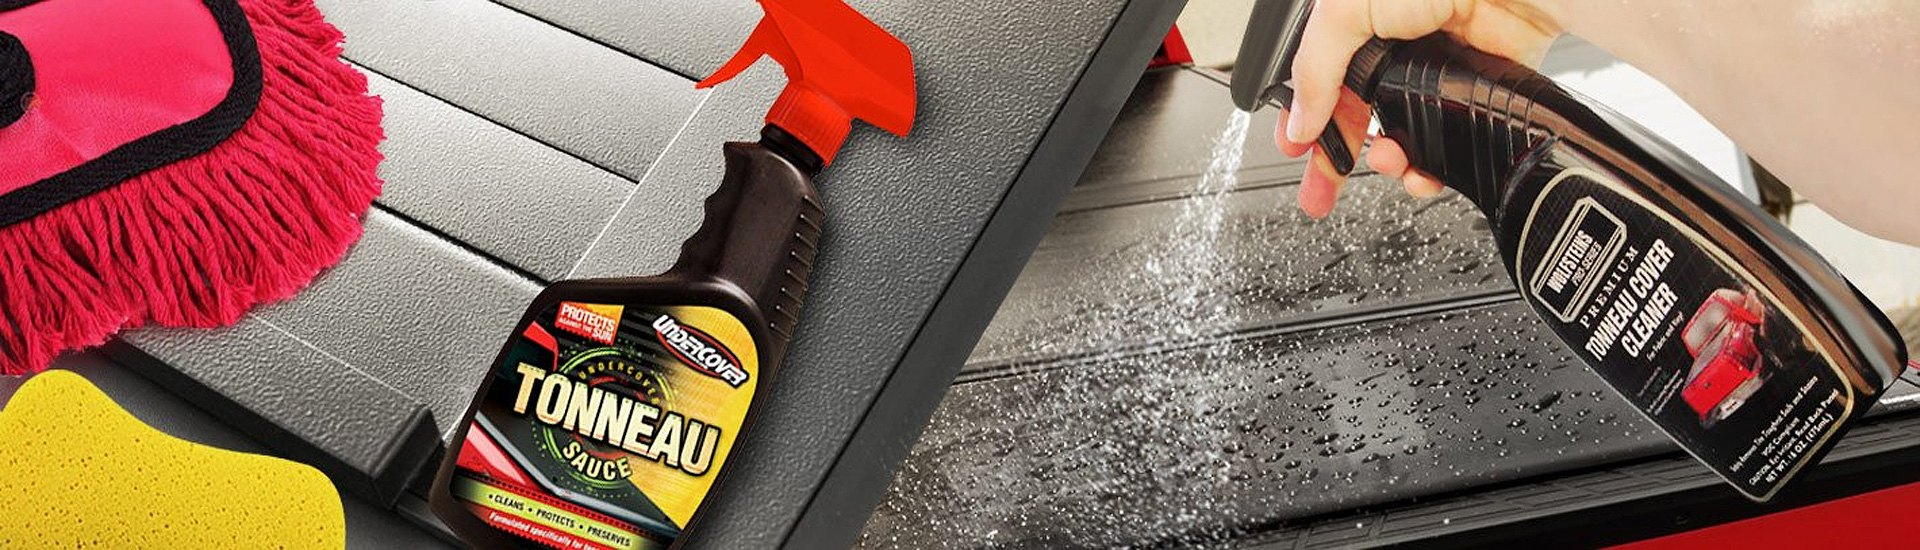 Tonneau Cover Cleaners & Protectors Remove The Dirt & Restore The Shine